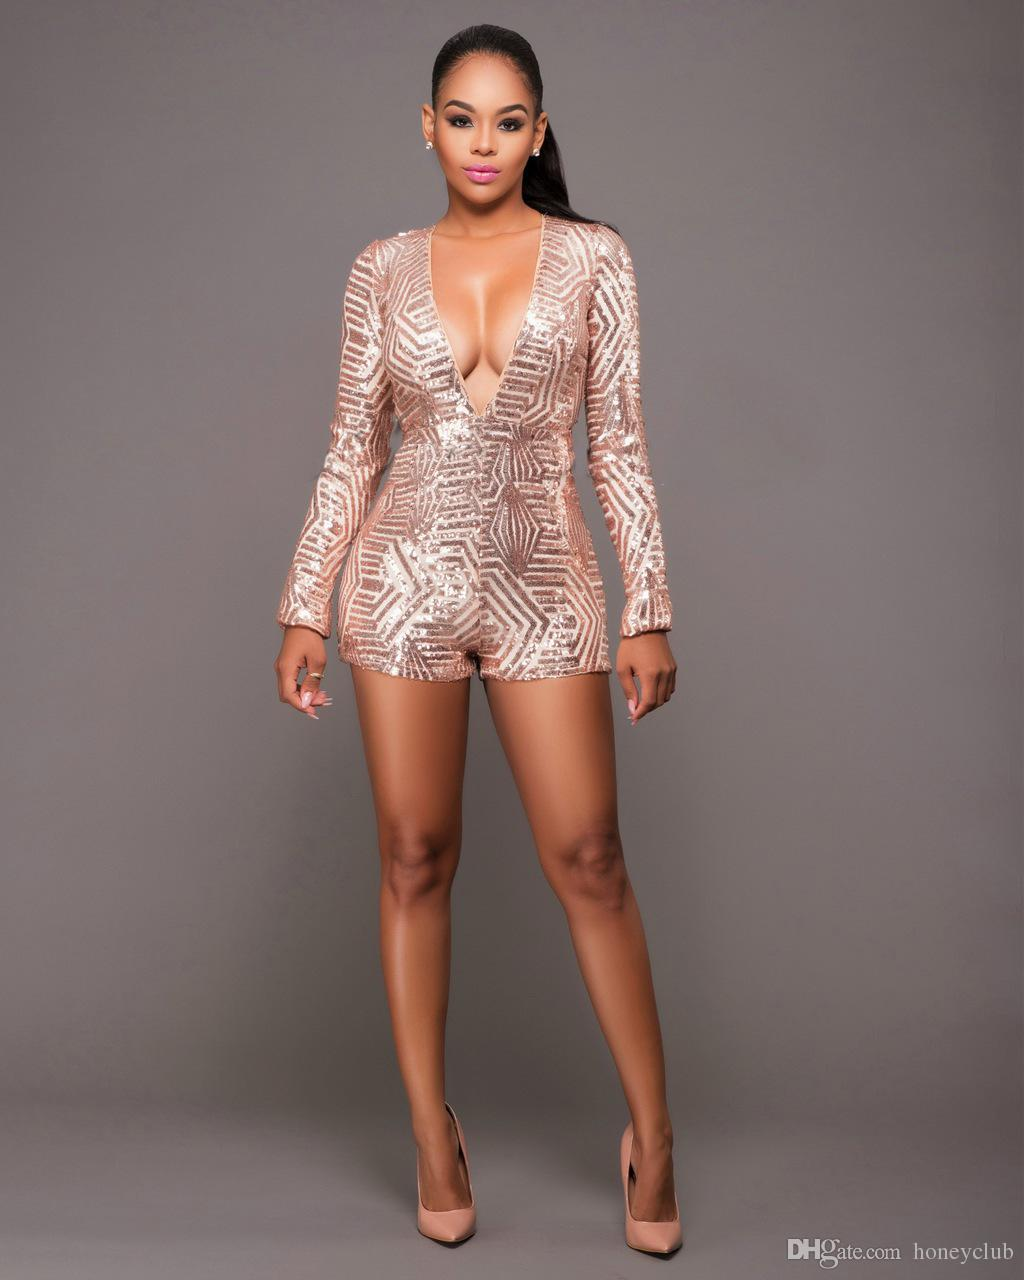 7898083a4872 Plus Size Clothing Sequin Hot Pants One Piece Jumpsuit Wedding Valentine Romper  Festival Rave Outfit Burning Man Costumes Sequin Romper Sequin Costumes One  ...